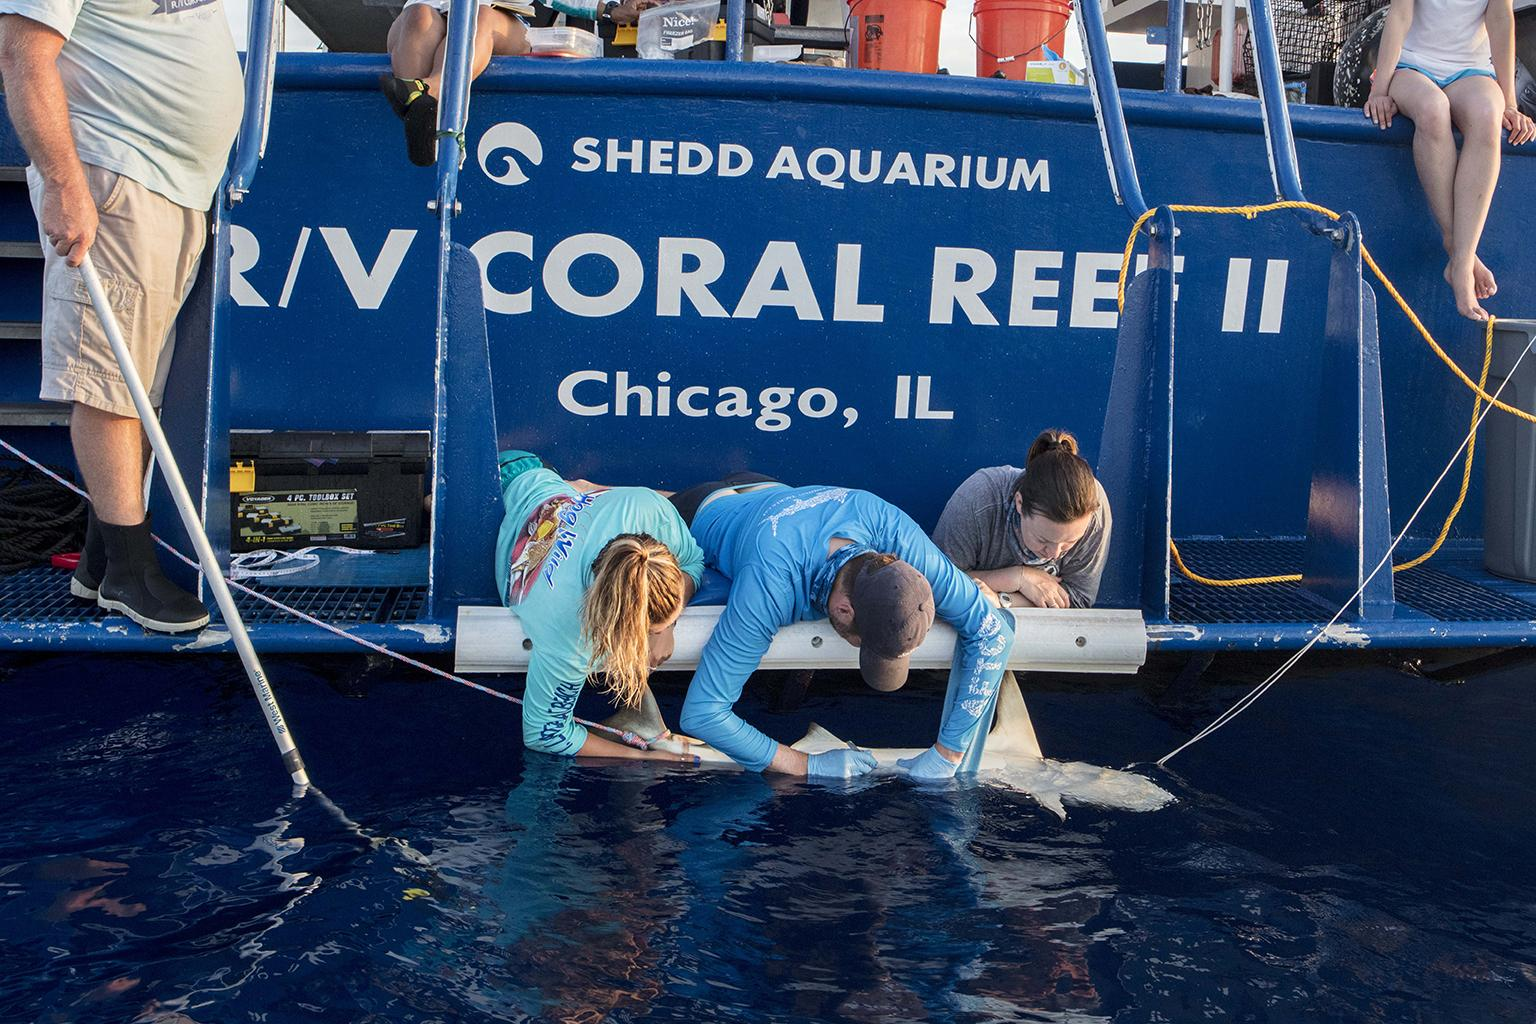 From the back of Shedd Aquarium's research vessel, the R/V Coral Reef II, Dr. Steve Kessel, middle, collects tissue samples from a Caribbean reef shark (Carcharhinus perezii) alongside two field research assistants, Abby Nease, left, and Jill Brooks. (Courtesy Shedd Aquarium)